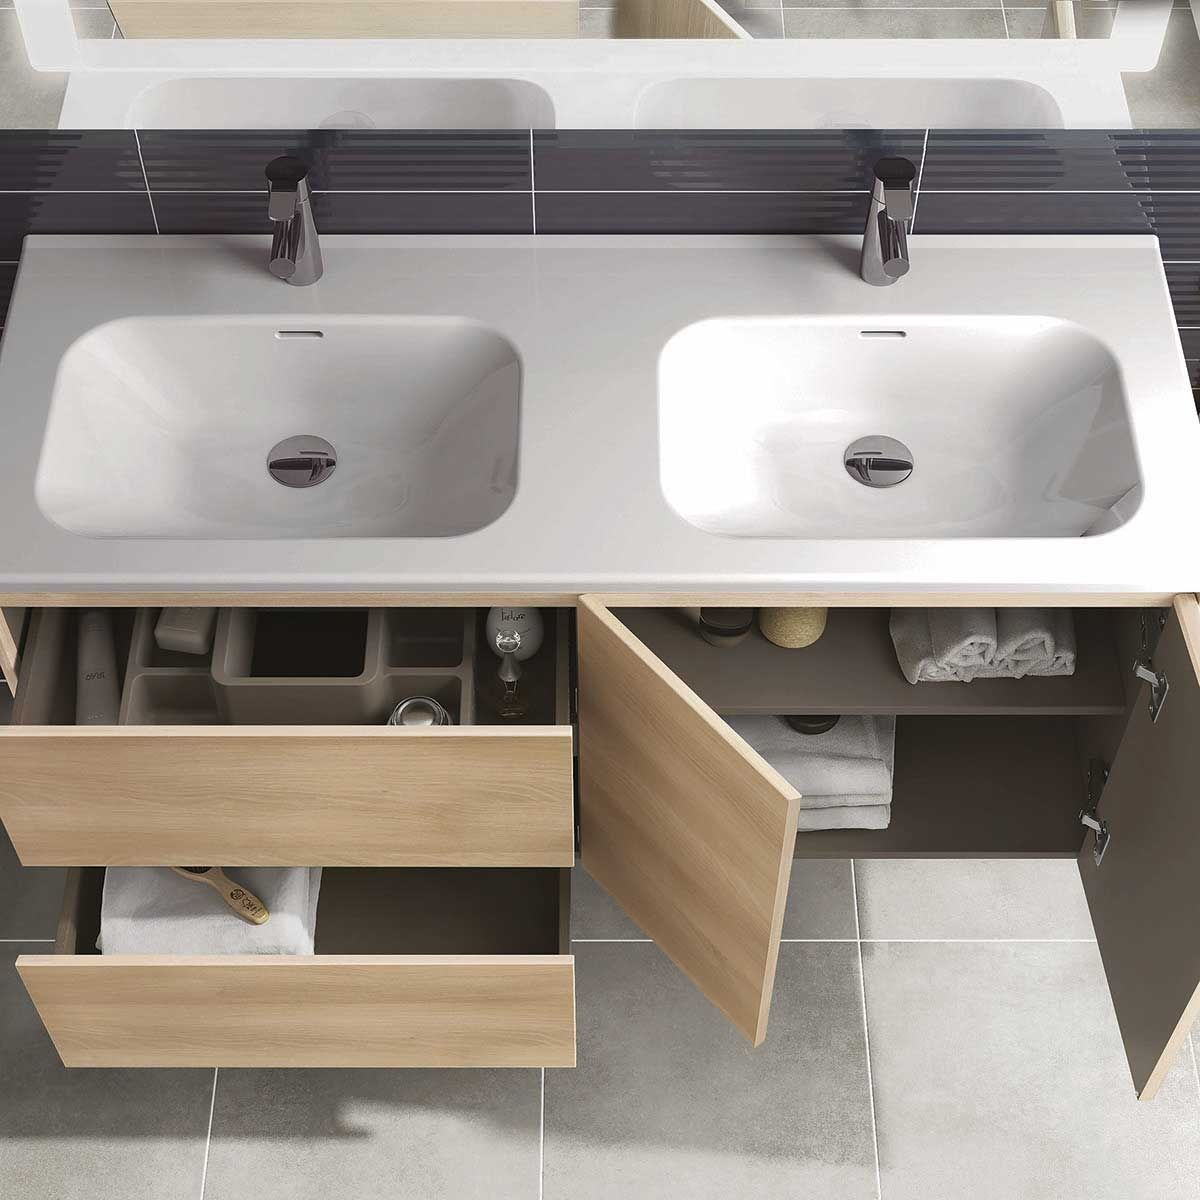 Ws Bath Collections Ambra 120dbl Pack 1 Wall Mounted Double Bathroom Vanity With Mirror Modo Bath